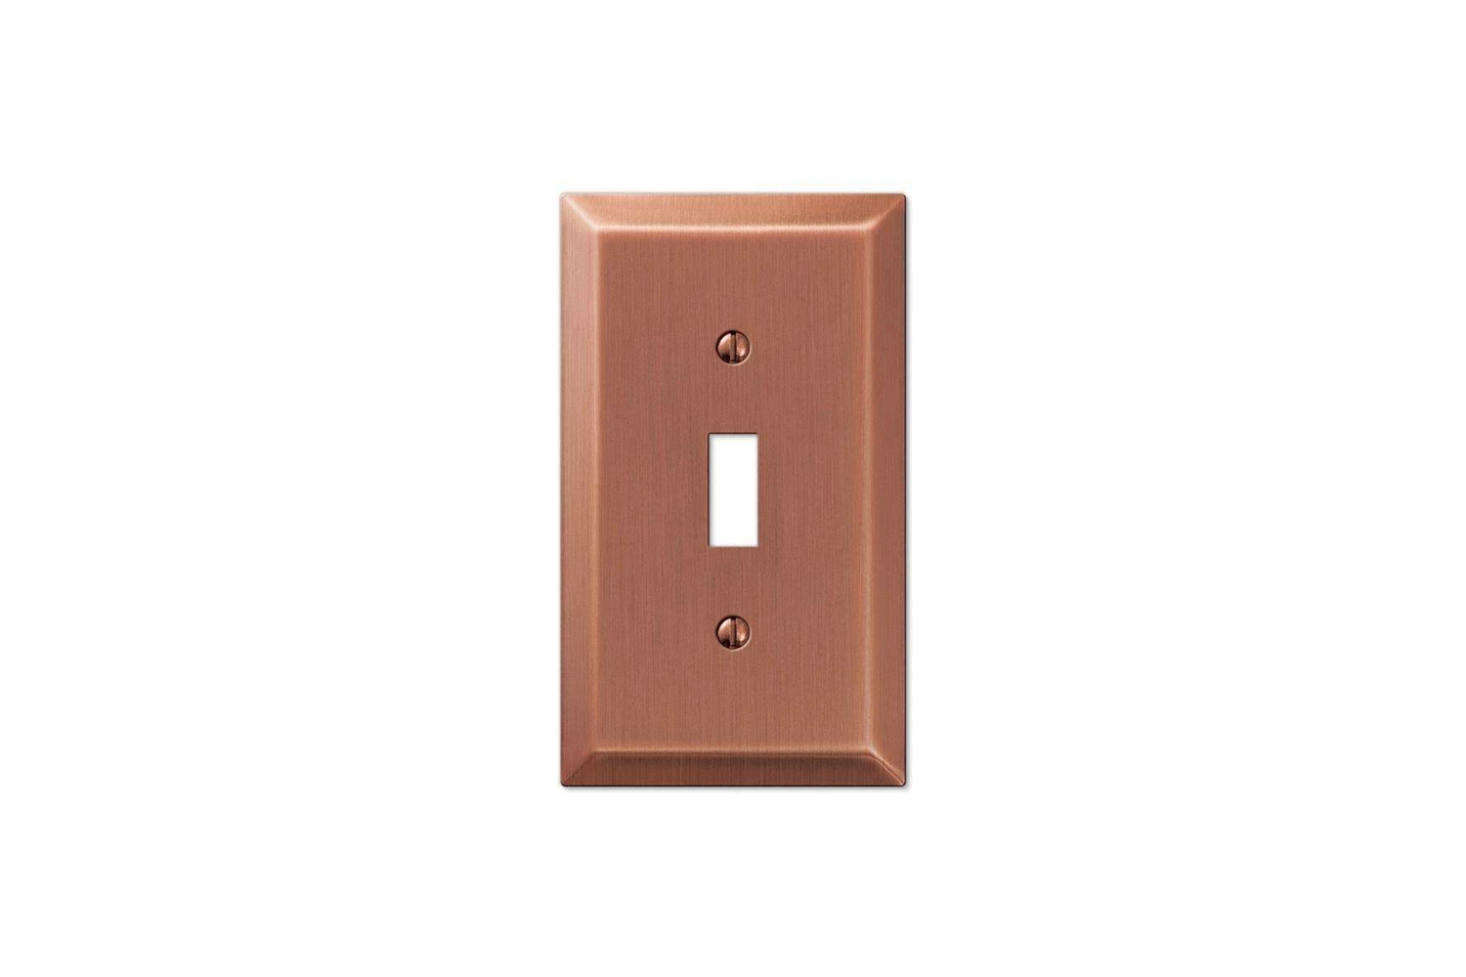 The Century Antique Copper Cover Plates are $3.73 each for the single toggle plate at Wallplates.com.